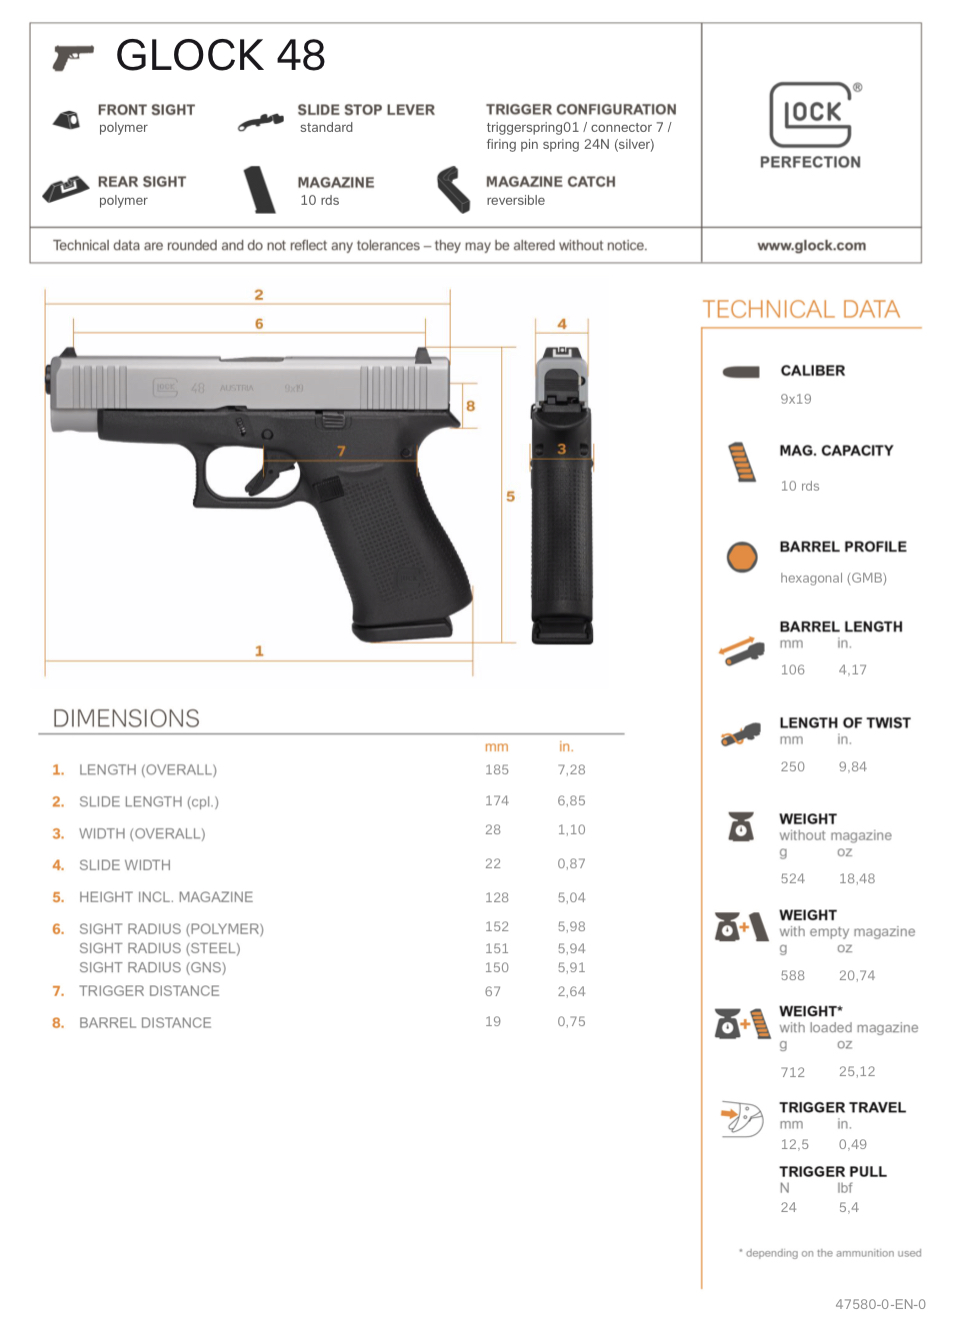 New Glock 43x Silver Slimline And Glock 48 Roll Out The Firearm Blog